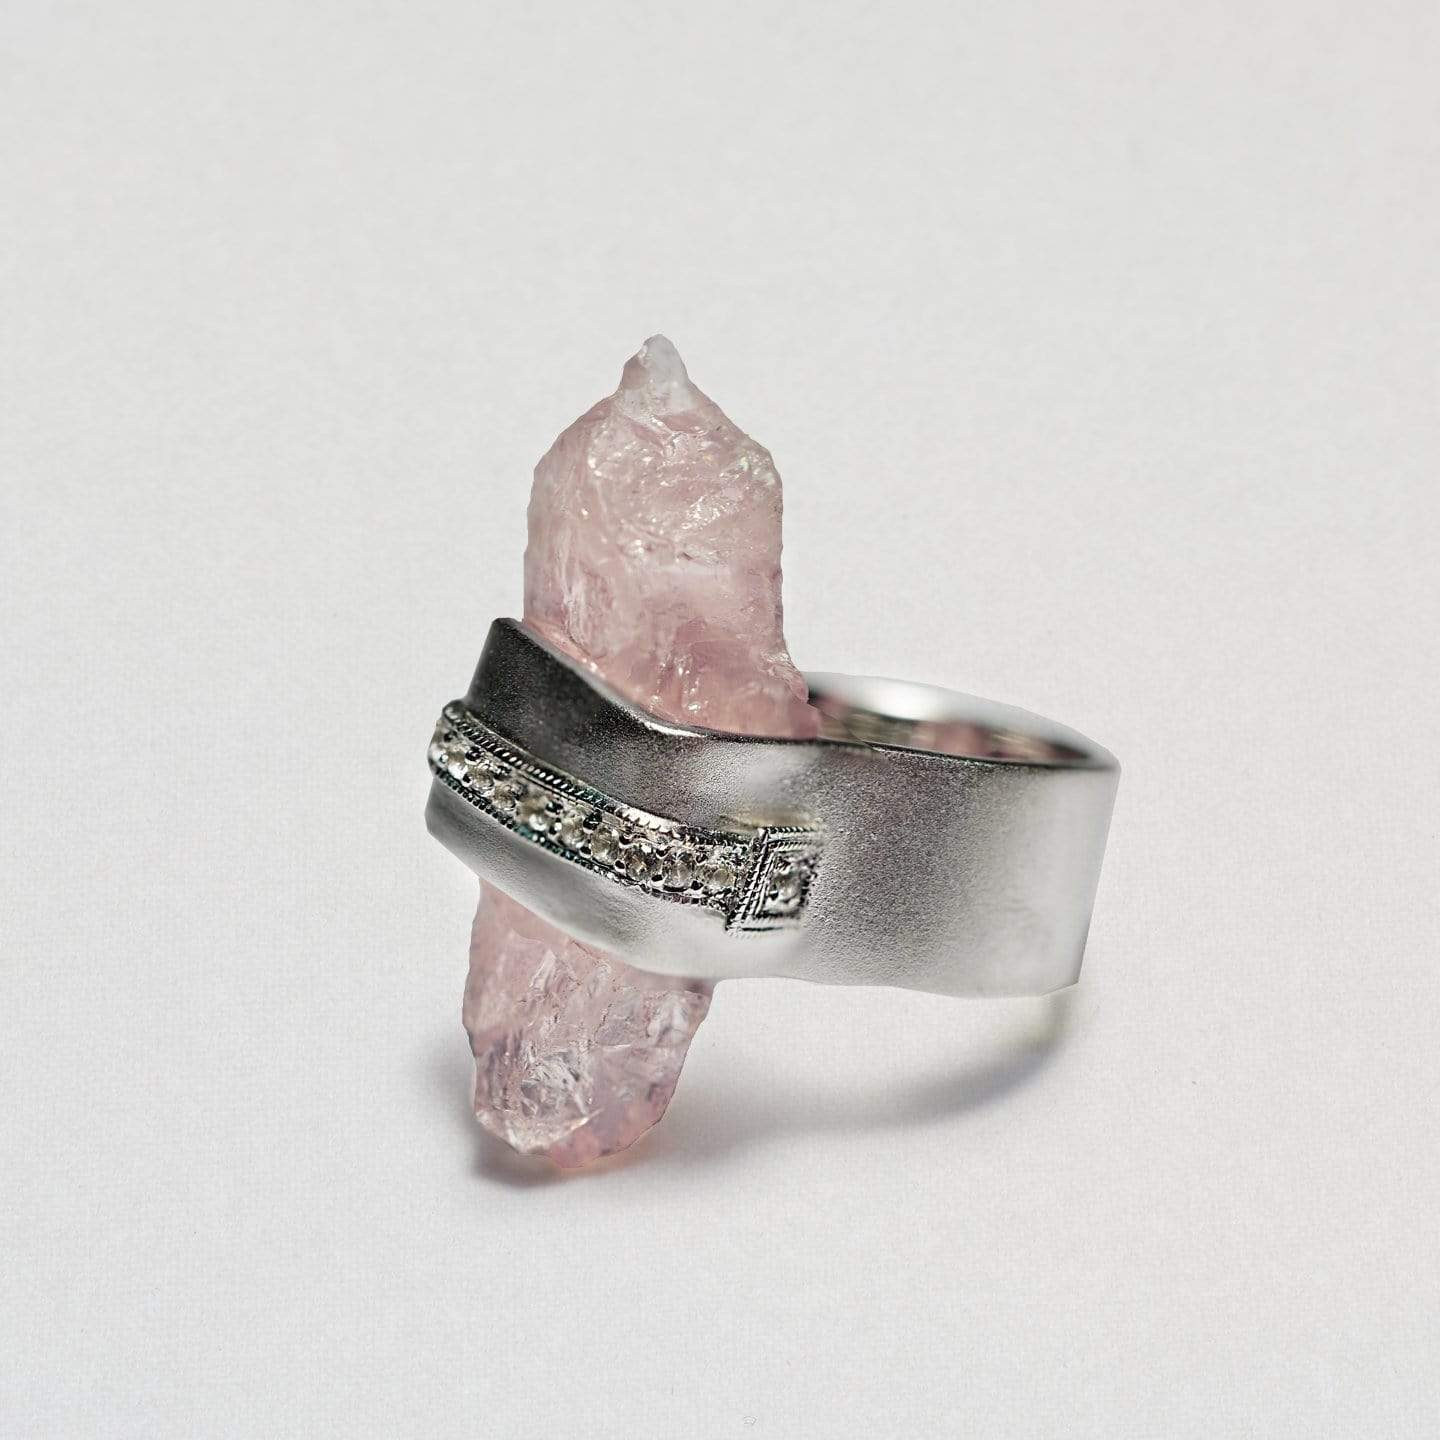 Rosa Ring, Exclusive, Quartz, Rhodium, silver, spo-disabled, StoneColor:PastelColor, Style:Statement, Type:LargeSoloStone Ring